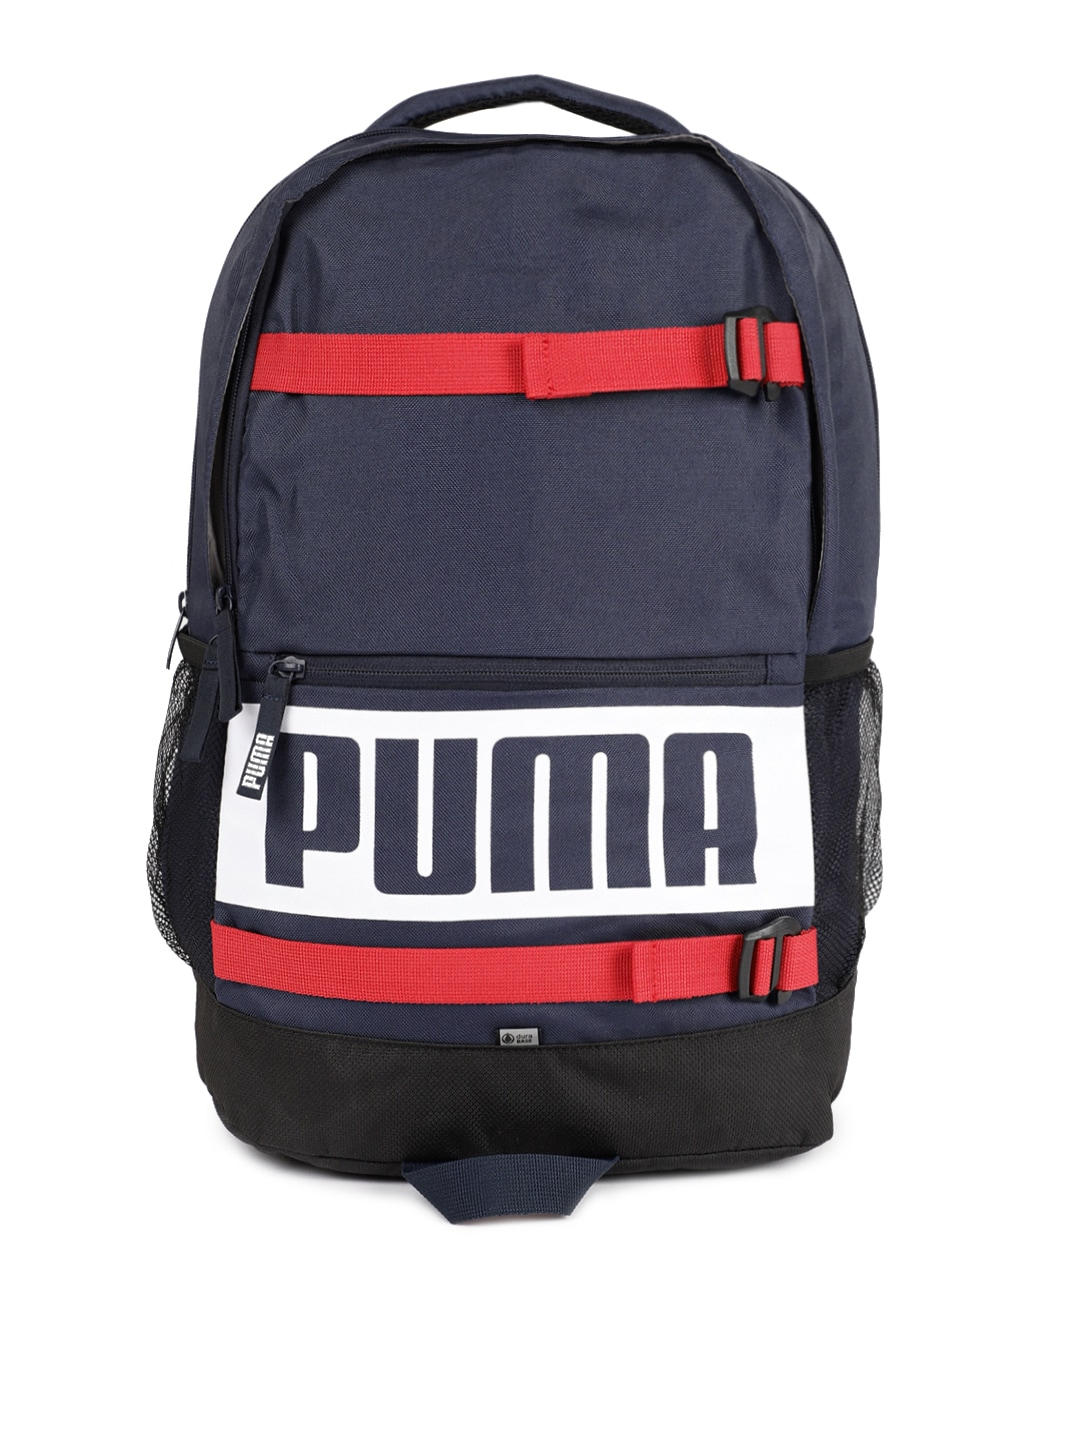 Puma Backpack - Buy Puma Backpack online in India cd786633b6e1a